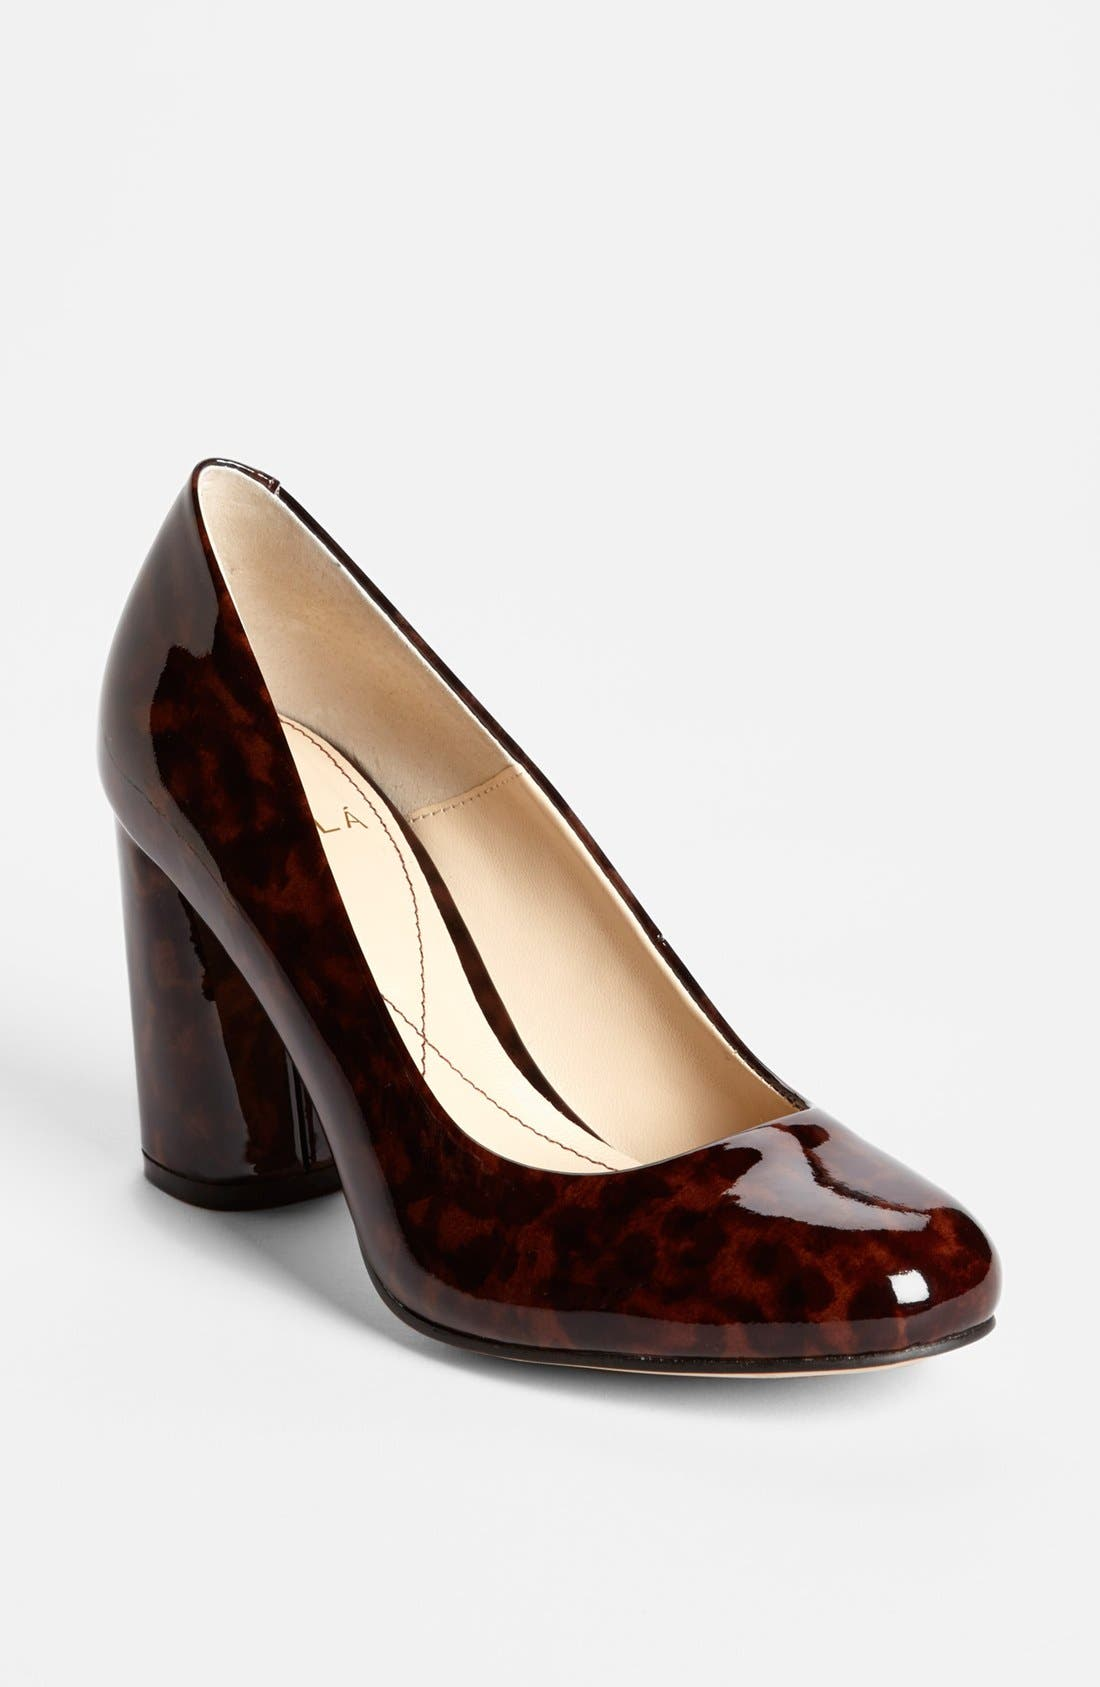 Main Image - Isolá 'Eleni' Patent Leather Pump